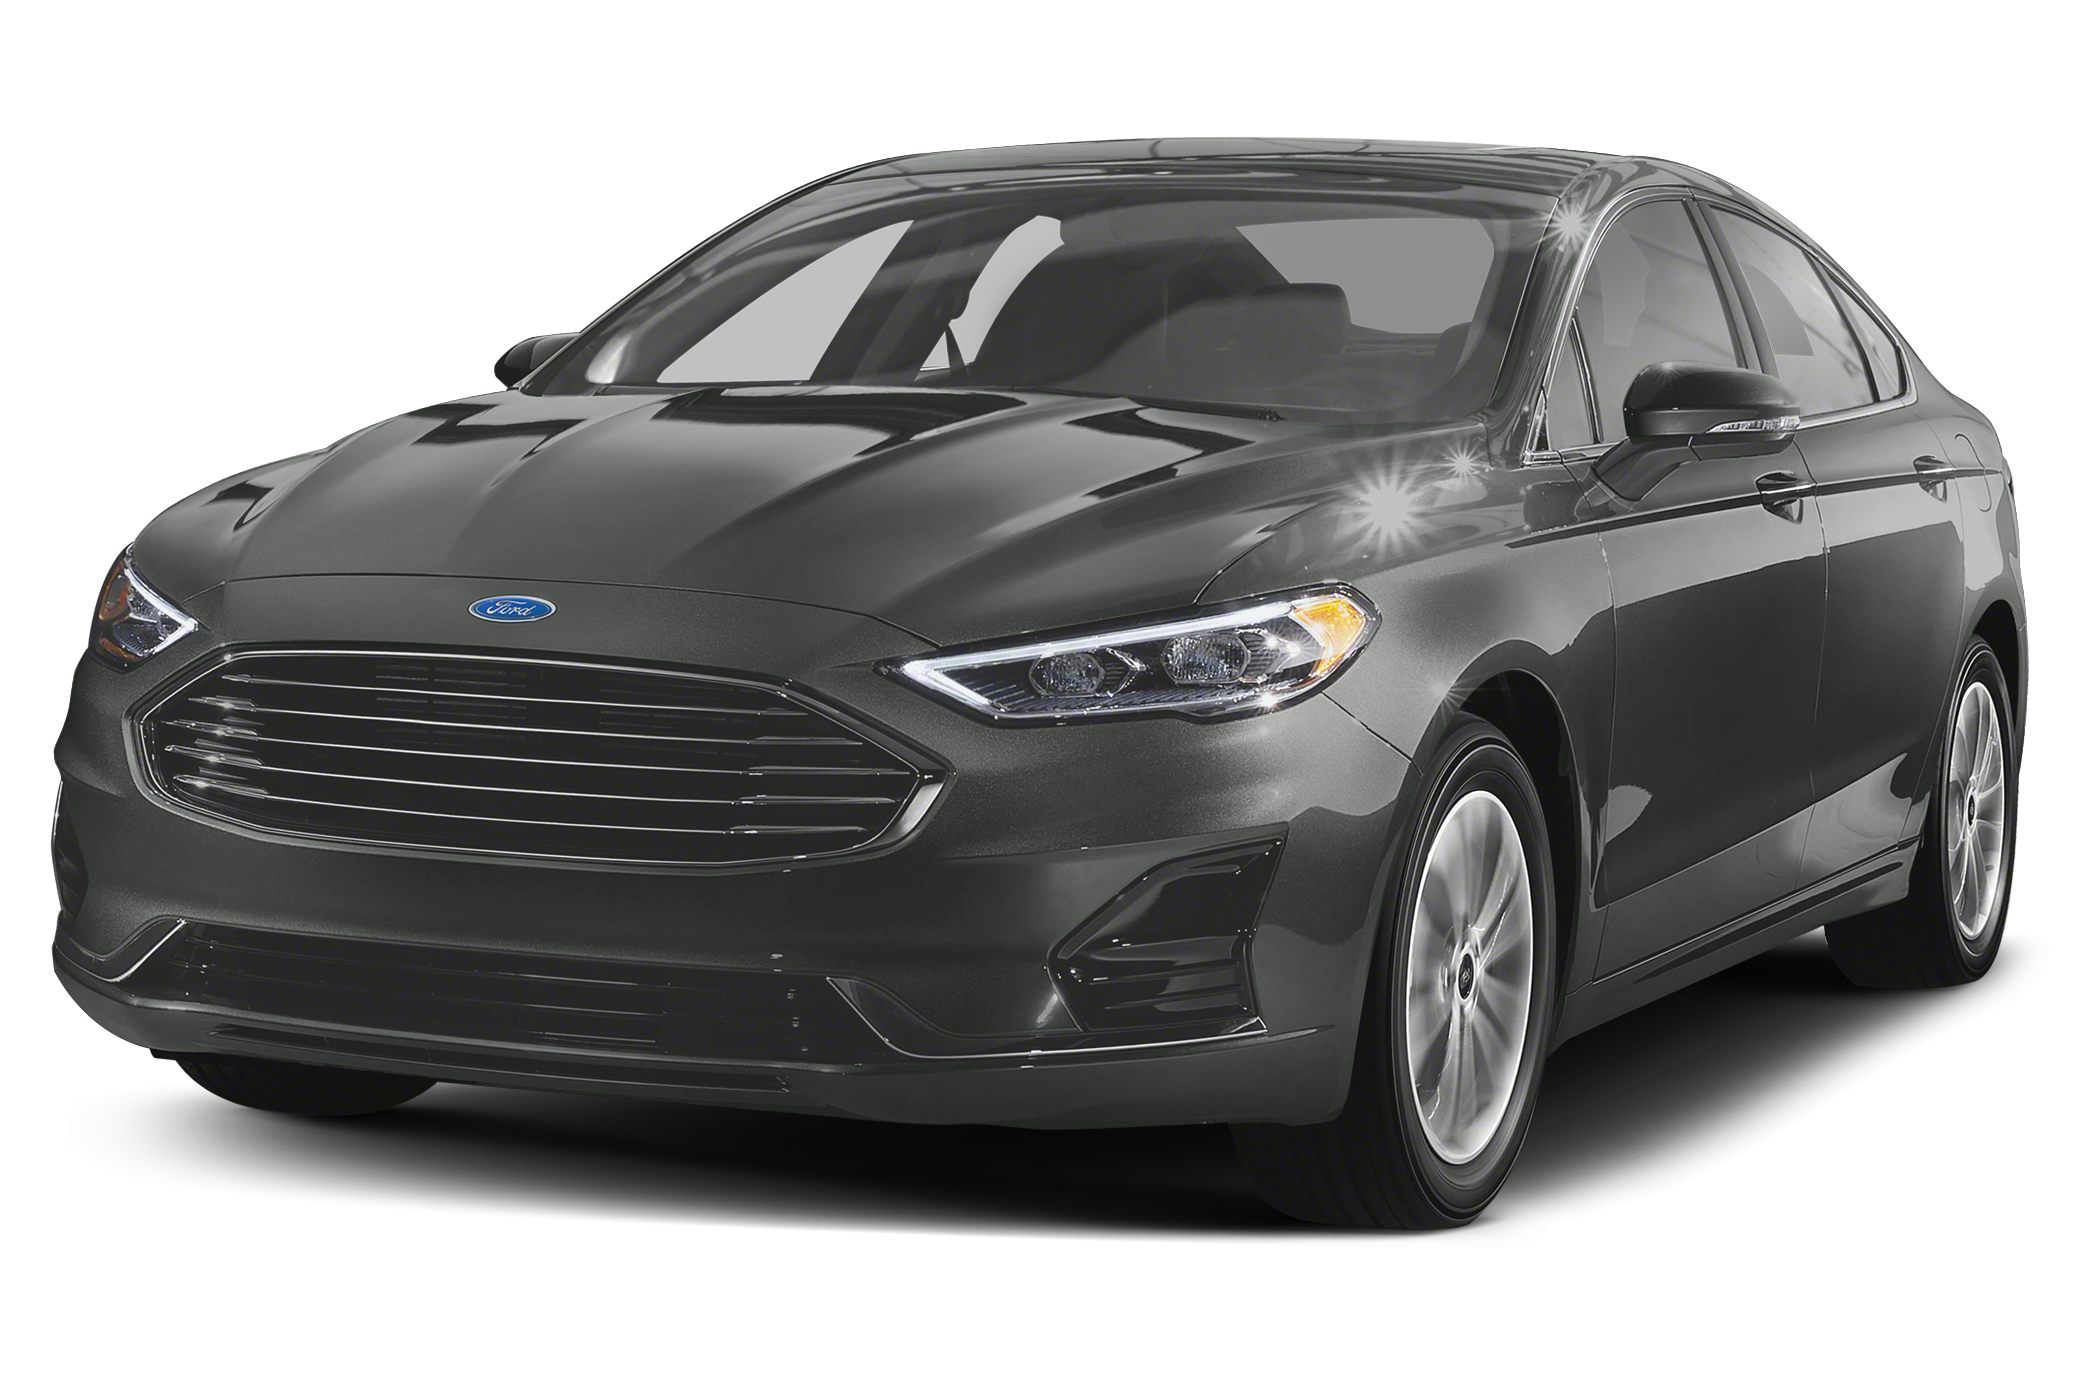 2019 Ford Fusion Information